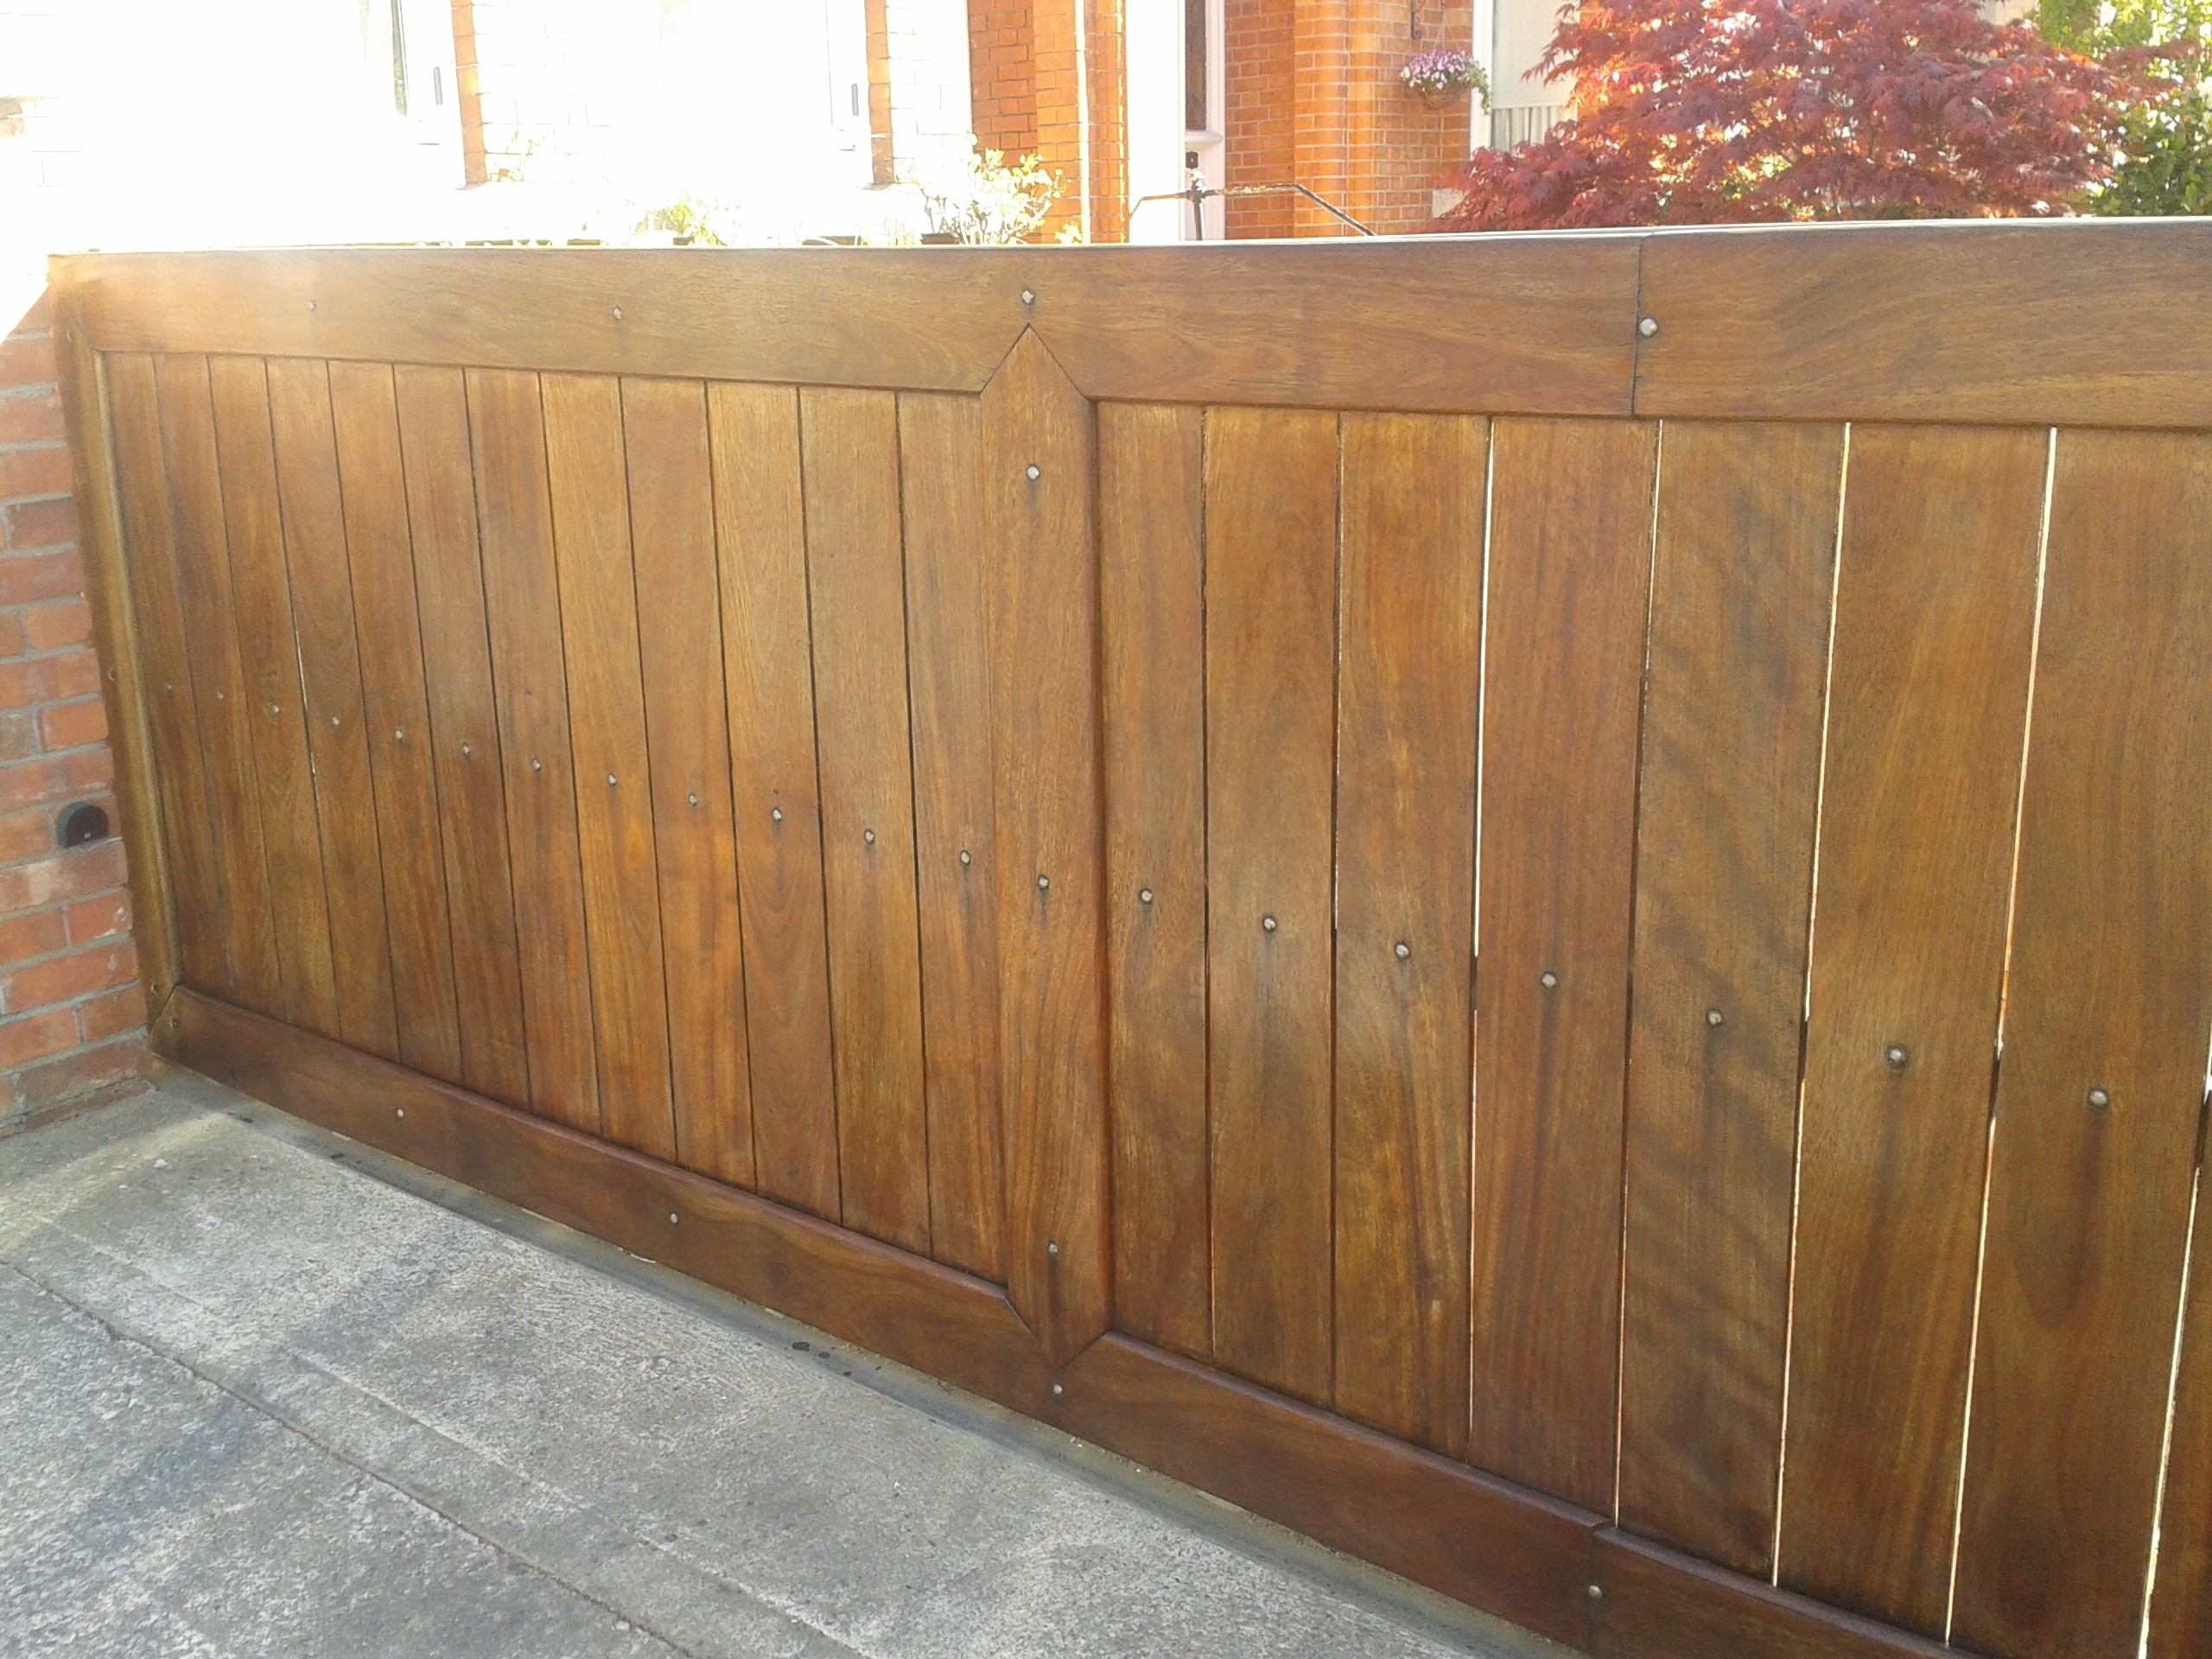 Should you use oil or varnish on exterior wood blog by Impressions Painting and Decorating